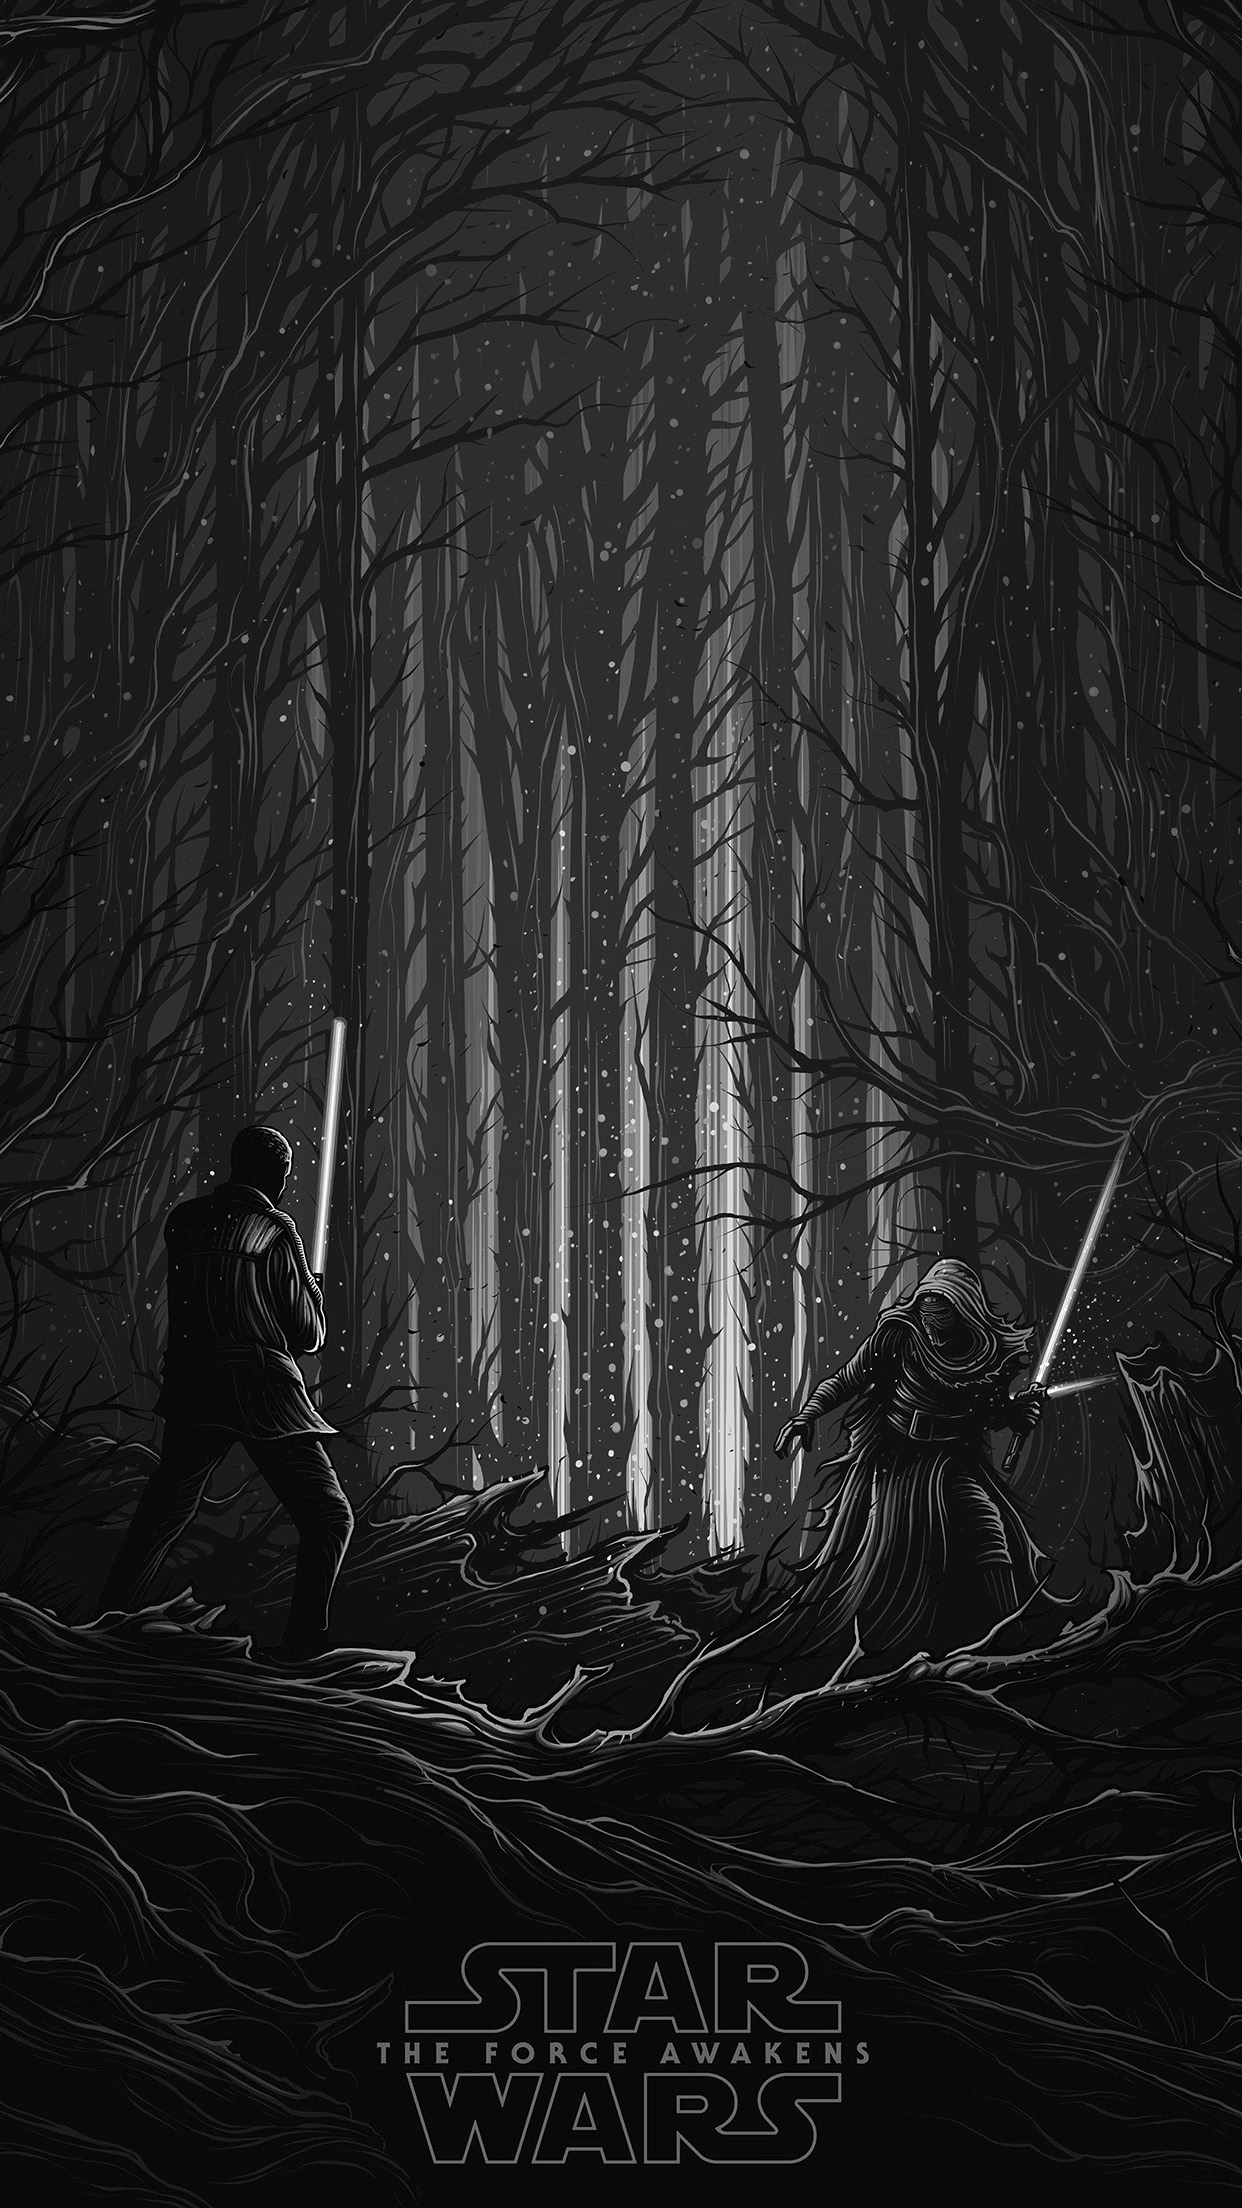 Ap48 Starwars Illustration Bw Dark Art Film Wallpaper